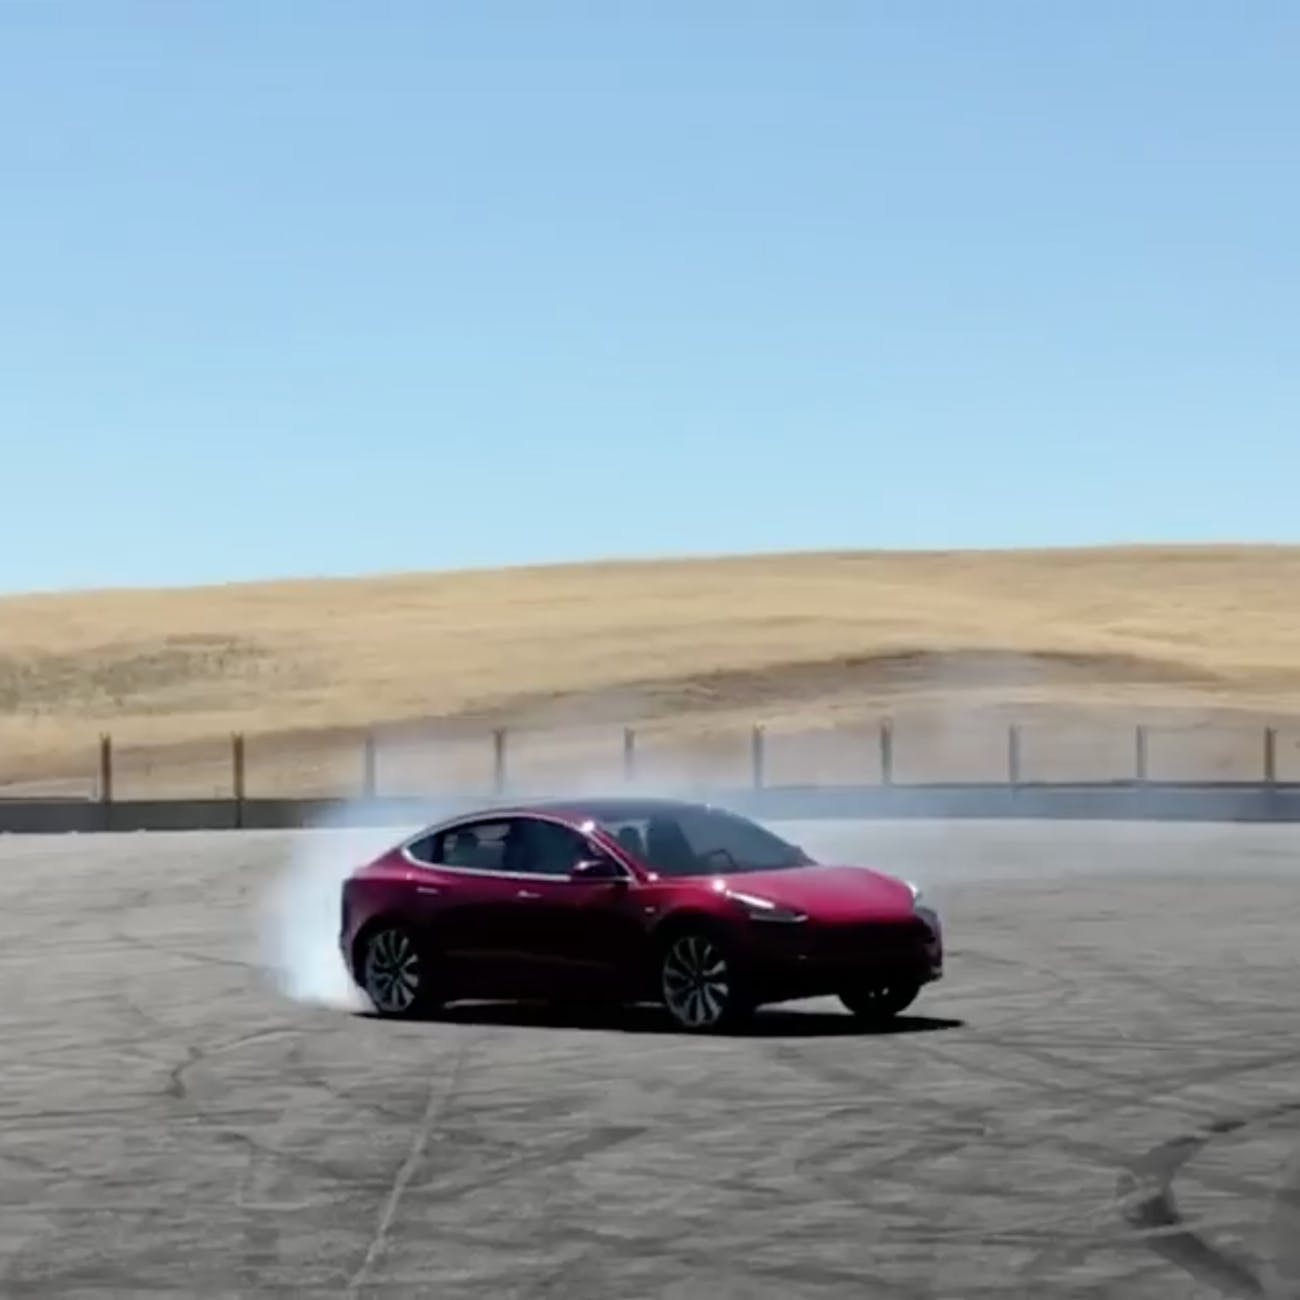 Tesla Track Mode: Watch This Model 3 Tear Asphalt With New Track